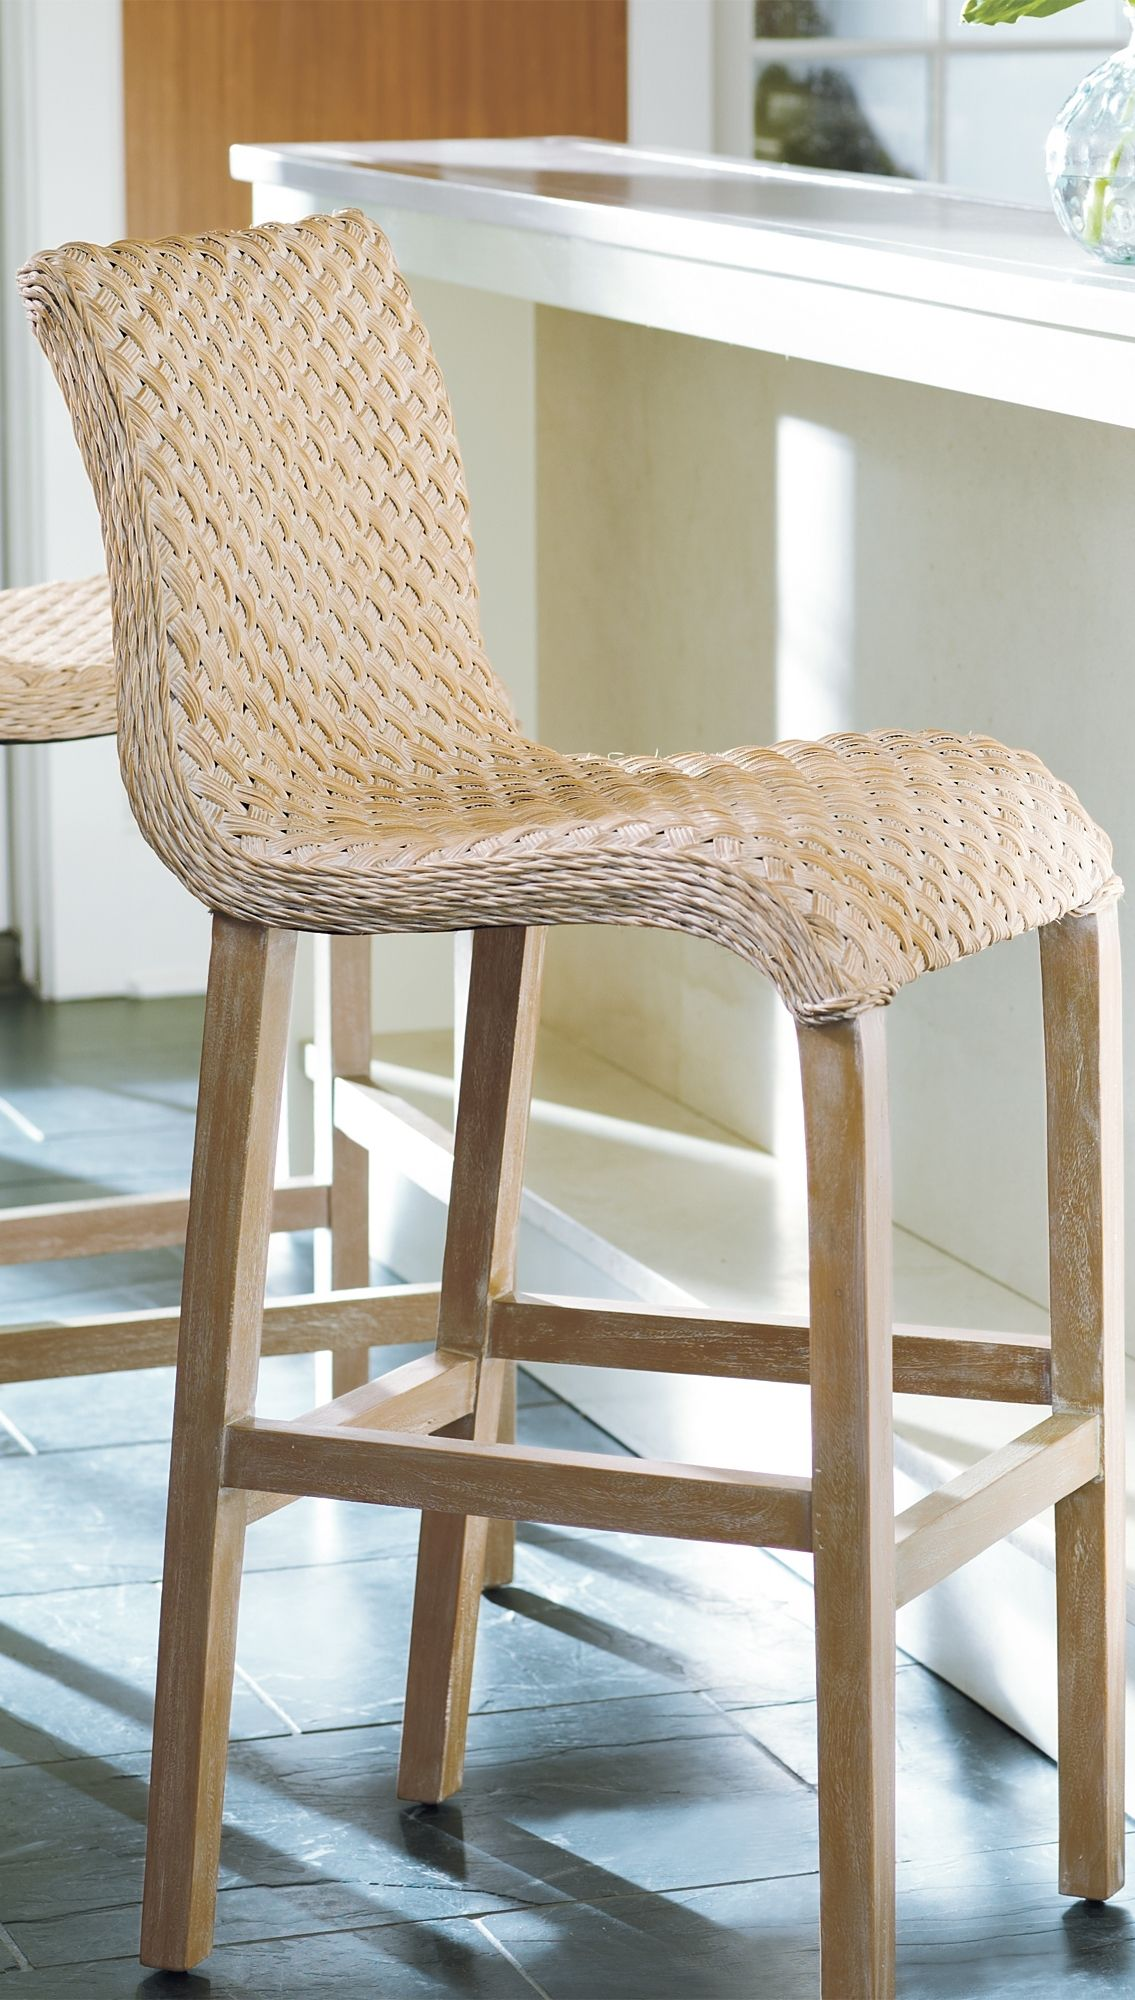 idea ratan designs rattan counter bar modern with table backs stool for height outdoor decor exotic kitchen faux stools wicker